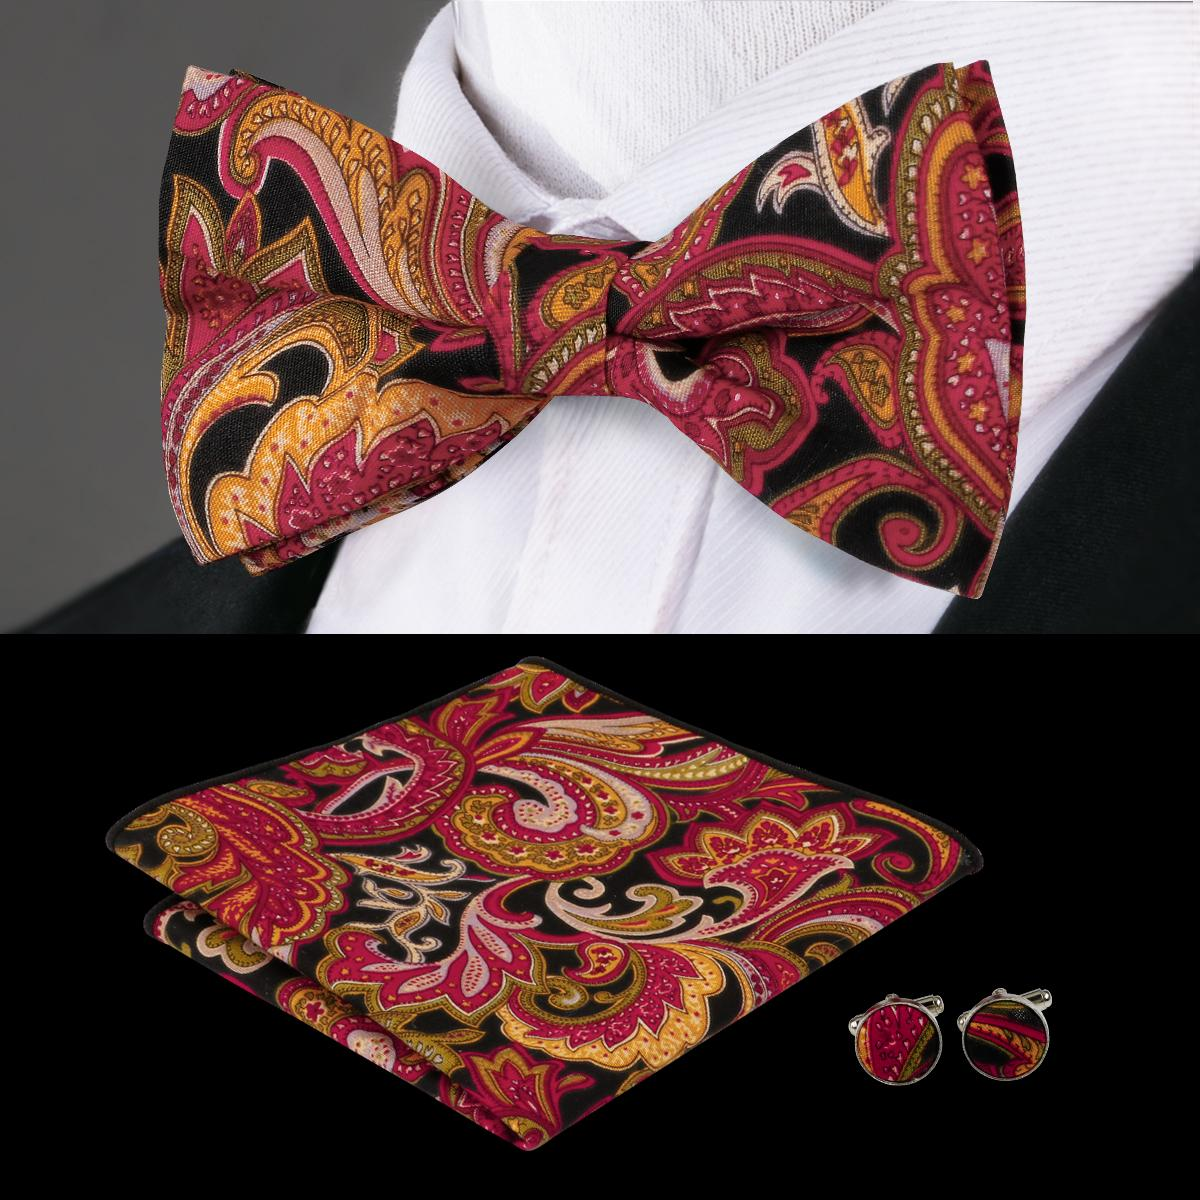 bca7f69f223e5 Hi-Tie New Style Bow Tie Set Paisley Bowtie Pocket Square Cufflinks Fashion  Cotton Bow Ties Fro Men Wedding Business Party Tie Set Business Tie Set Bow  Tie ...